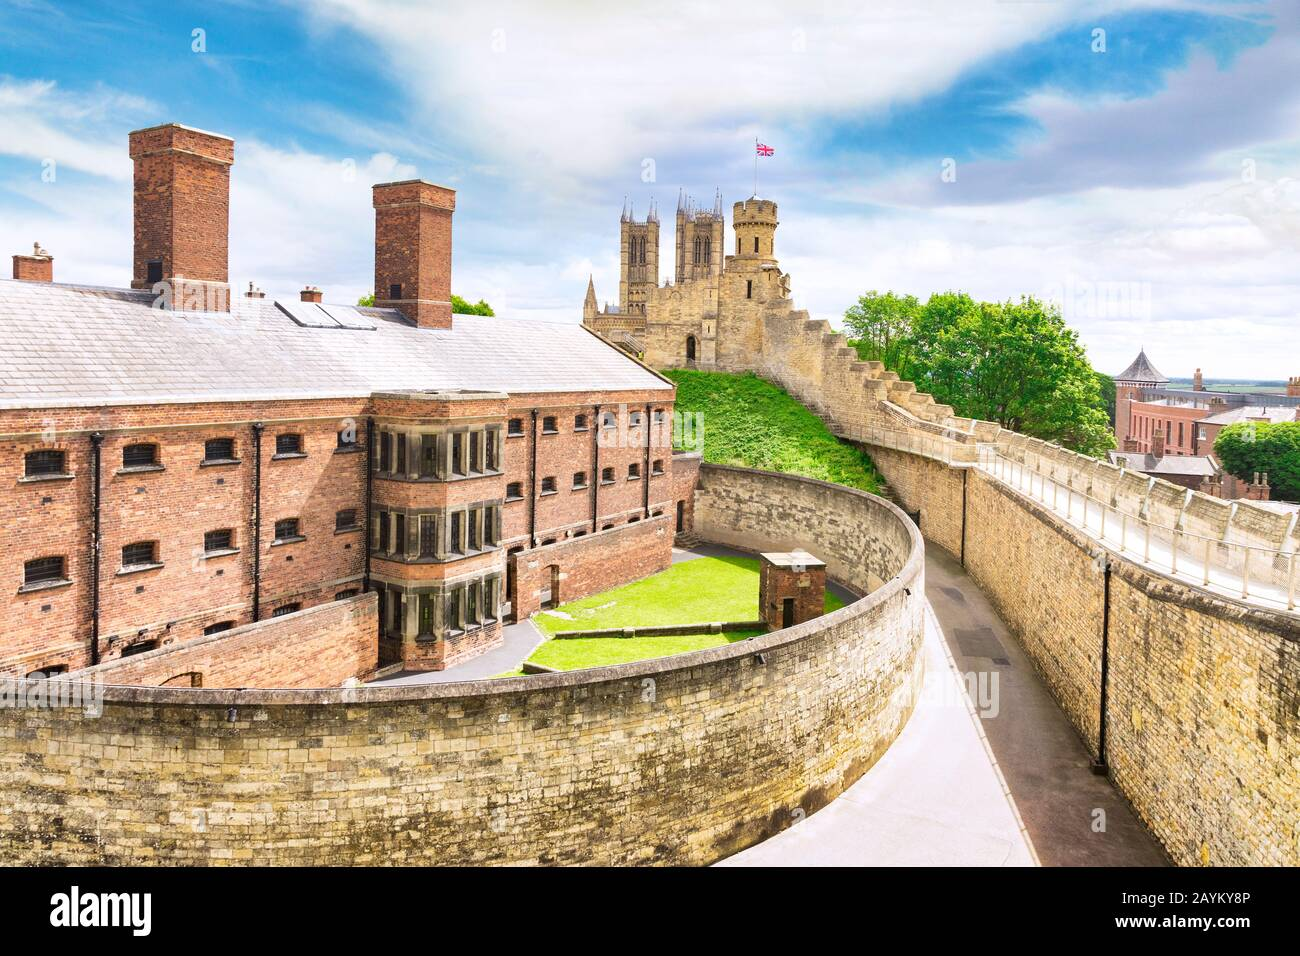 2 July 2019: Lincoln, UK - The old gaol, now a tourist attraction, from the walls of the castle. The cathedral  towers can be seen in the background. Stock Photo